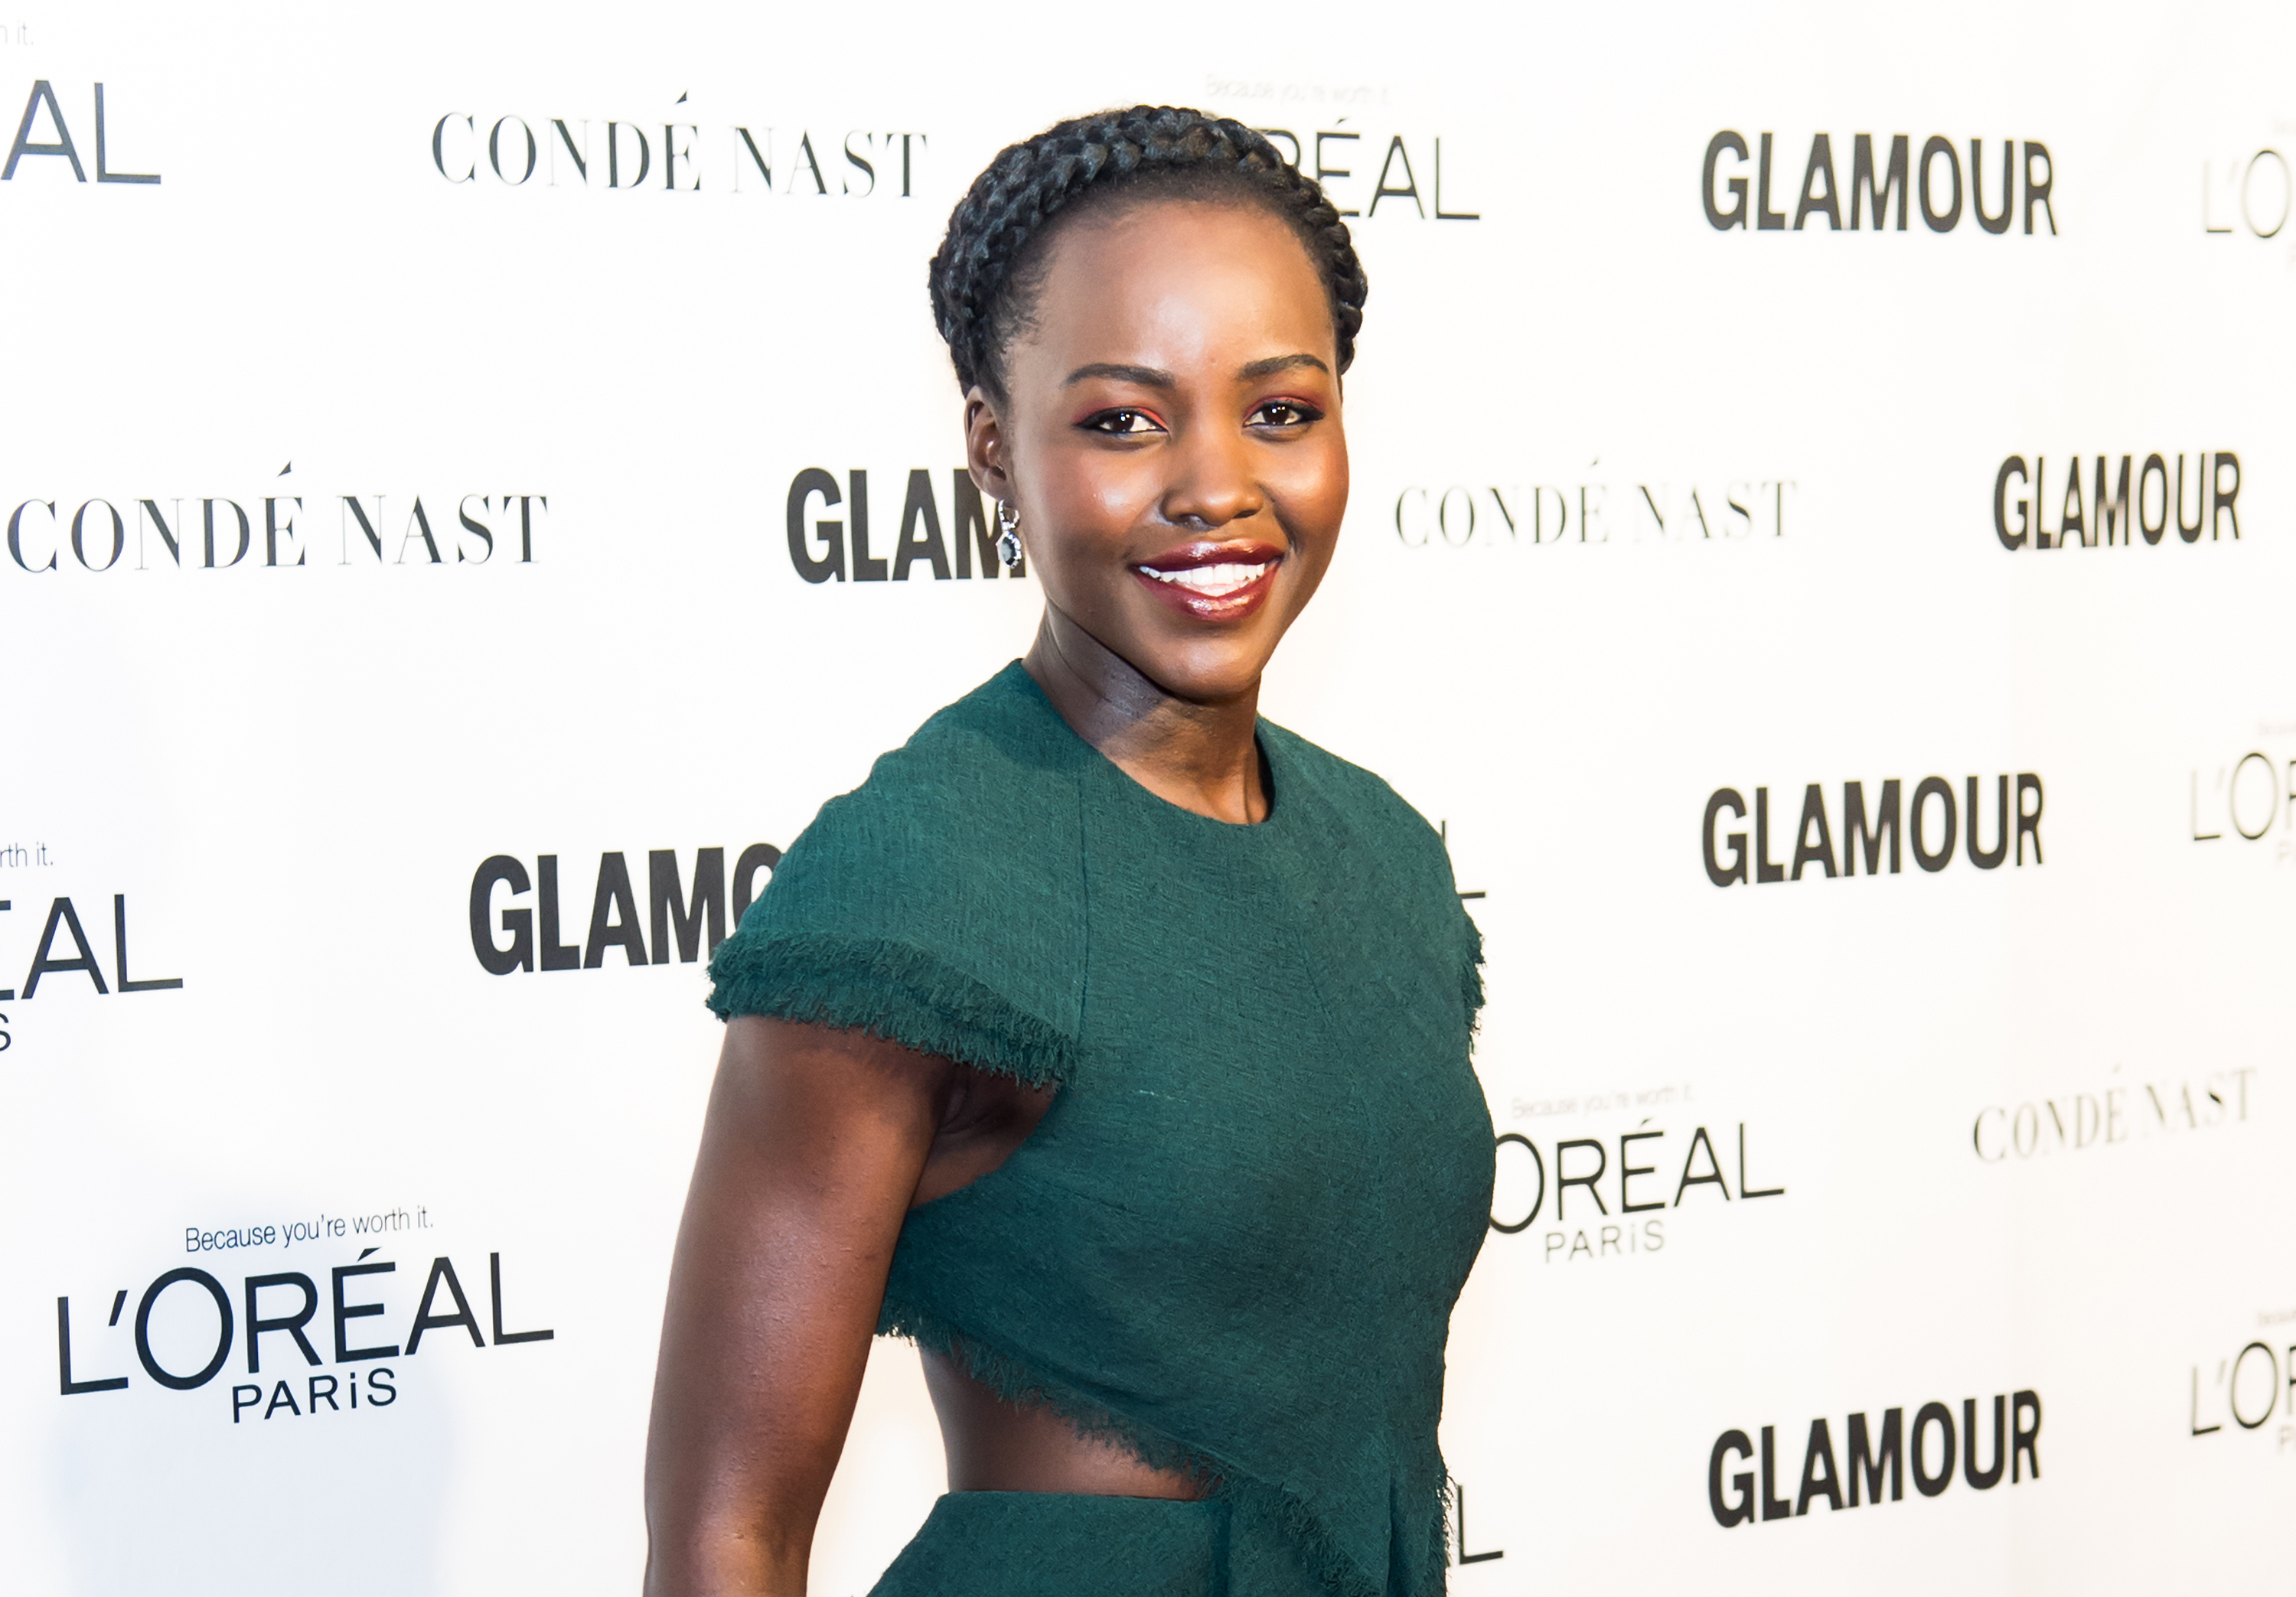 Actress Lupita Nyong'o attends Glamour's 25th Anniversary Women Of The Year Awards at Carnegie Hall in New York City, Nov. 9, 2015.